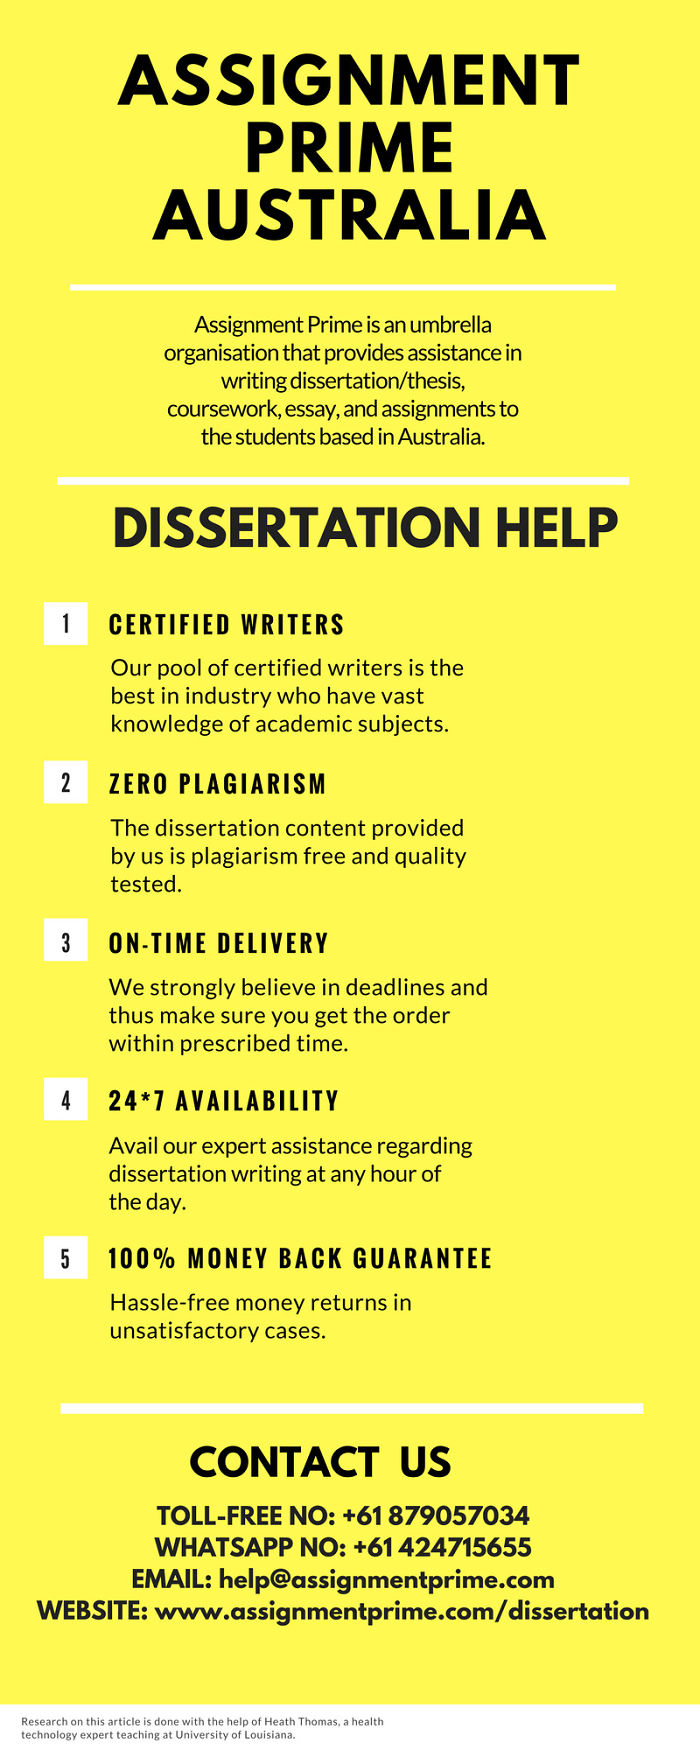 academic writing services australia Big assignments is an assignment writing service in australia that aims to help students at all levels achieve academic success through our trustworthy, easy to use services.